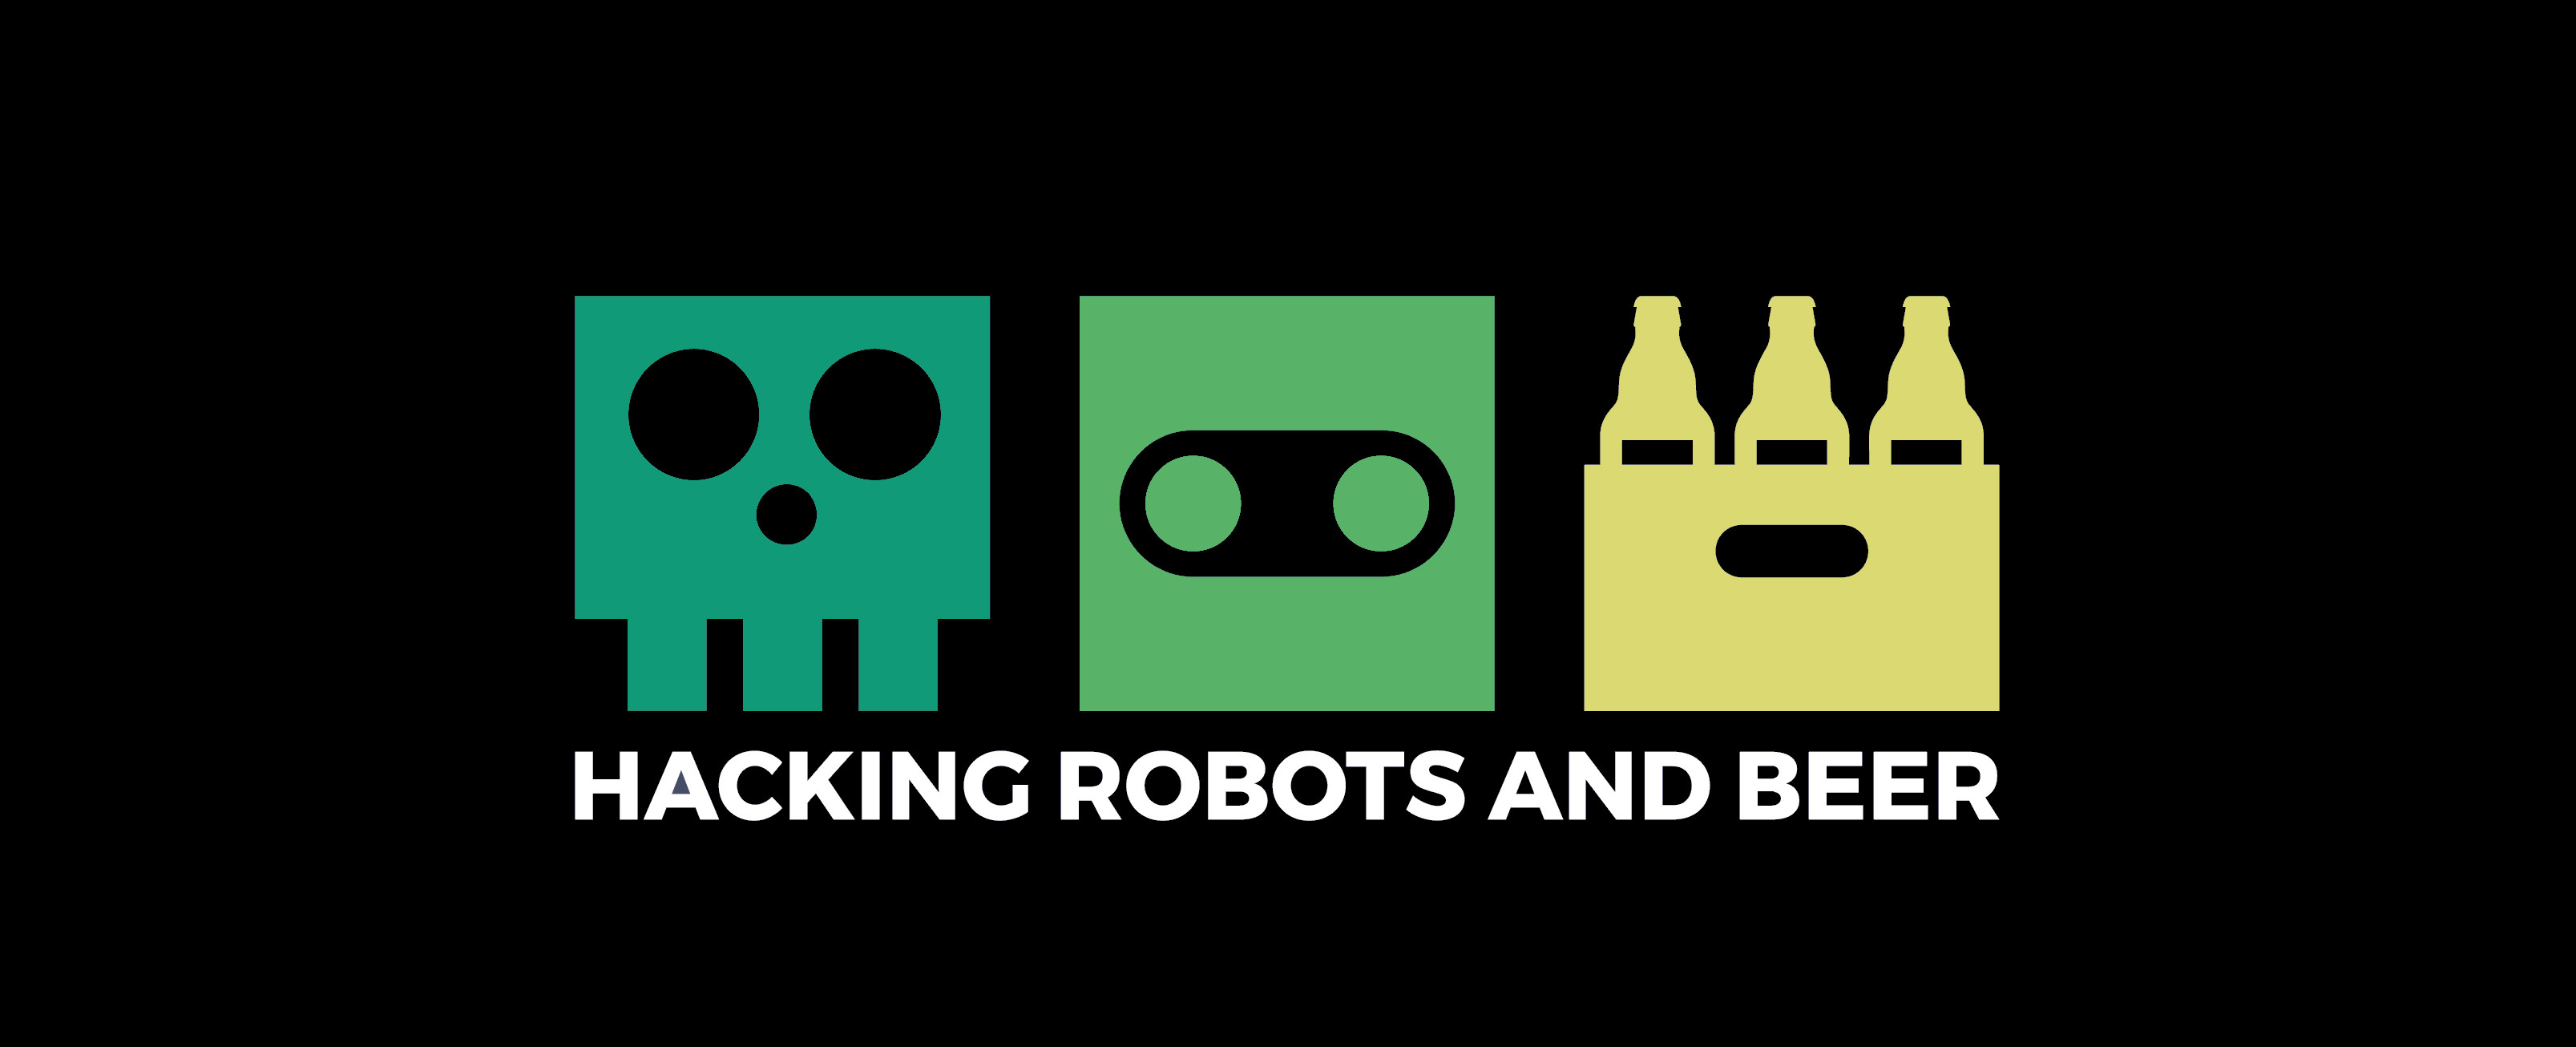 hack robots and beer